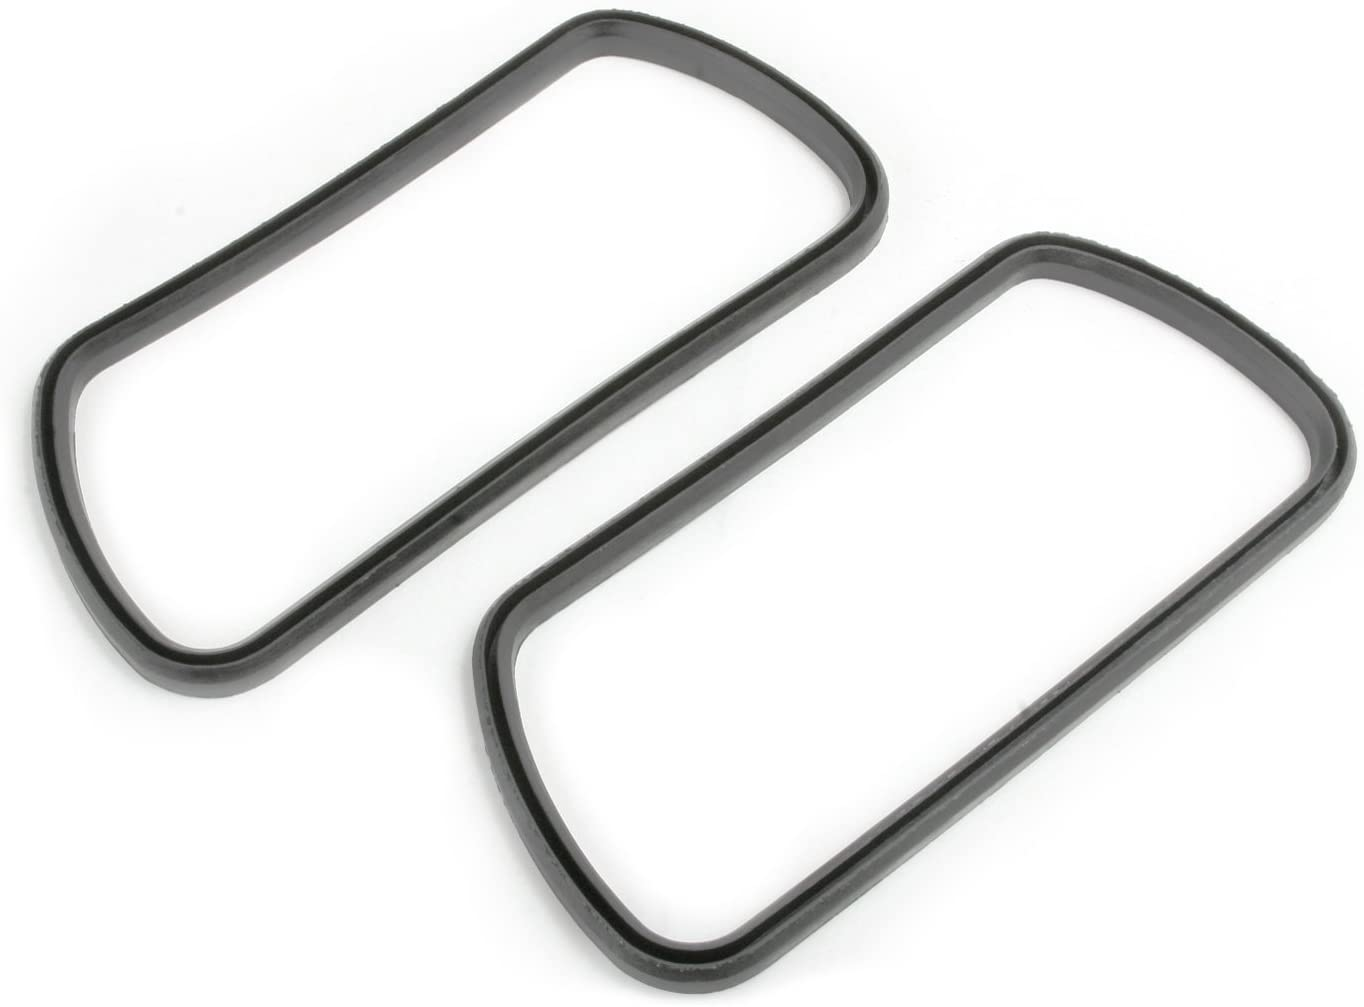 VW Dune Buggy Bug Ghia Thing Trike Bus Baja Sand Rail Pair CHANNEL GASKETS FOR EMPI 8852 VALVE COVERS EMPI 00-8868-0